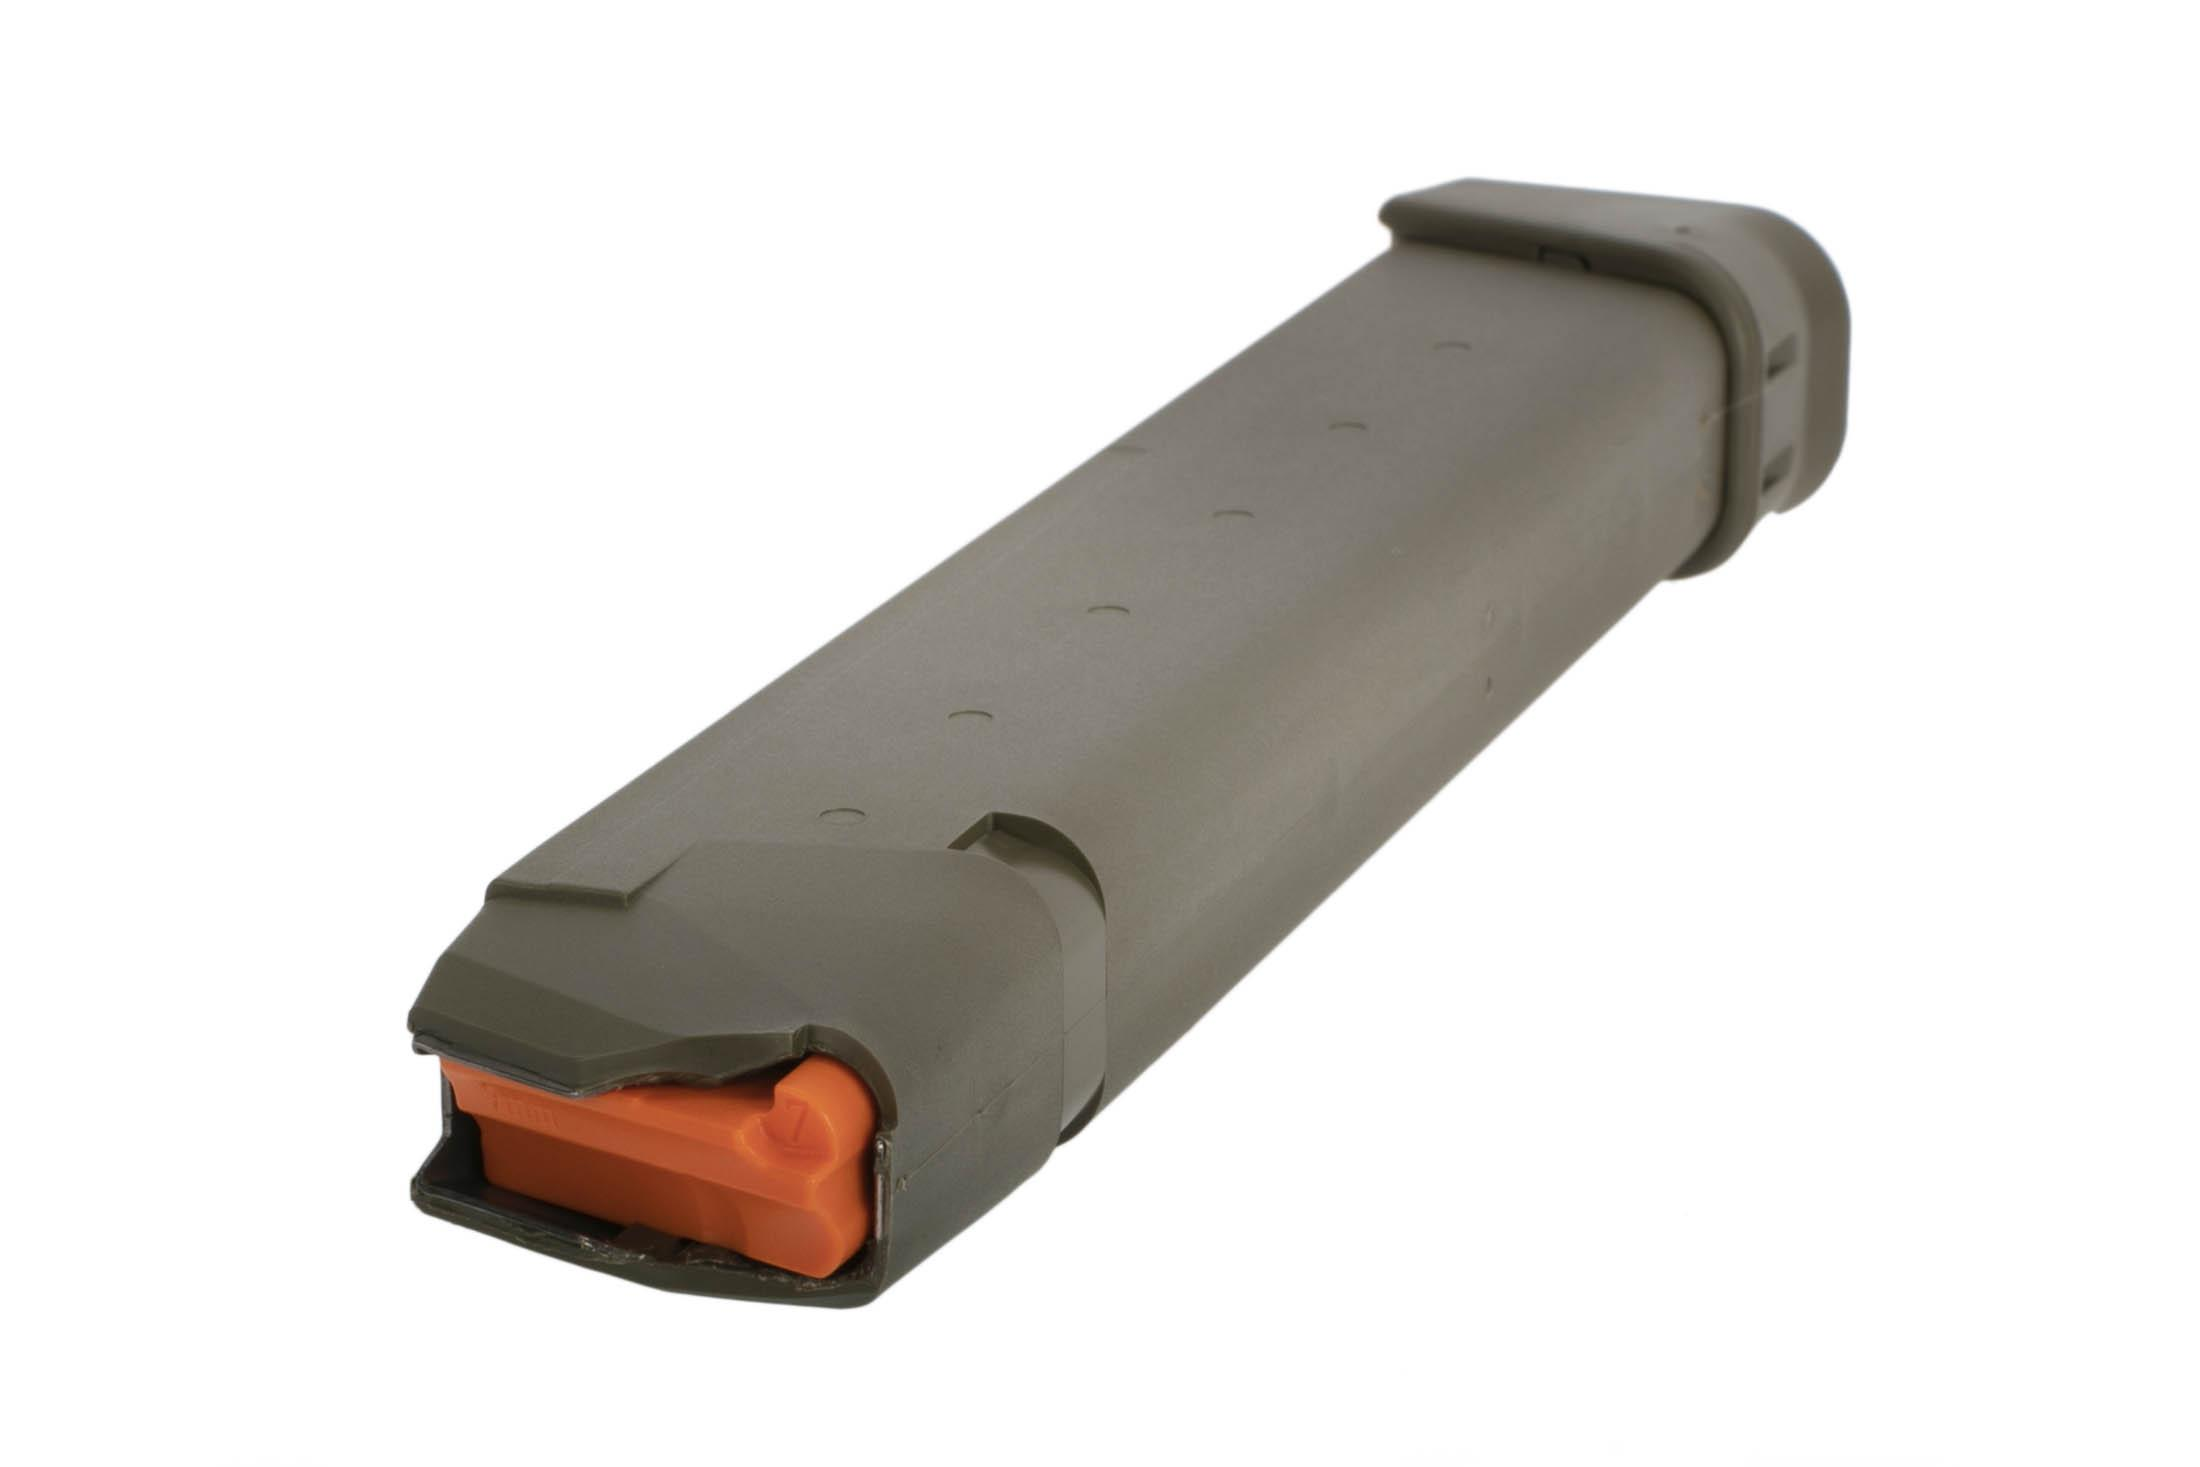 GLOCK factory original G17 Gen5 pistol magazine holds 33 rounds of 9mm has an olive drab green finish and hi vis follower